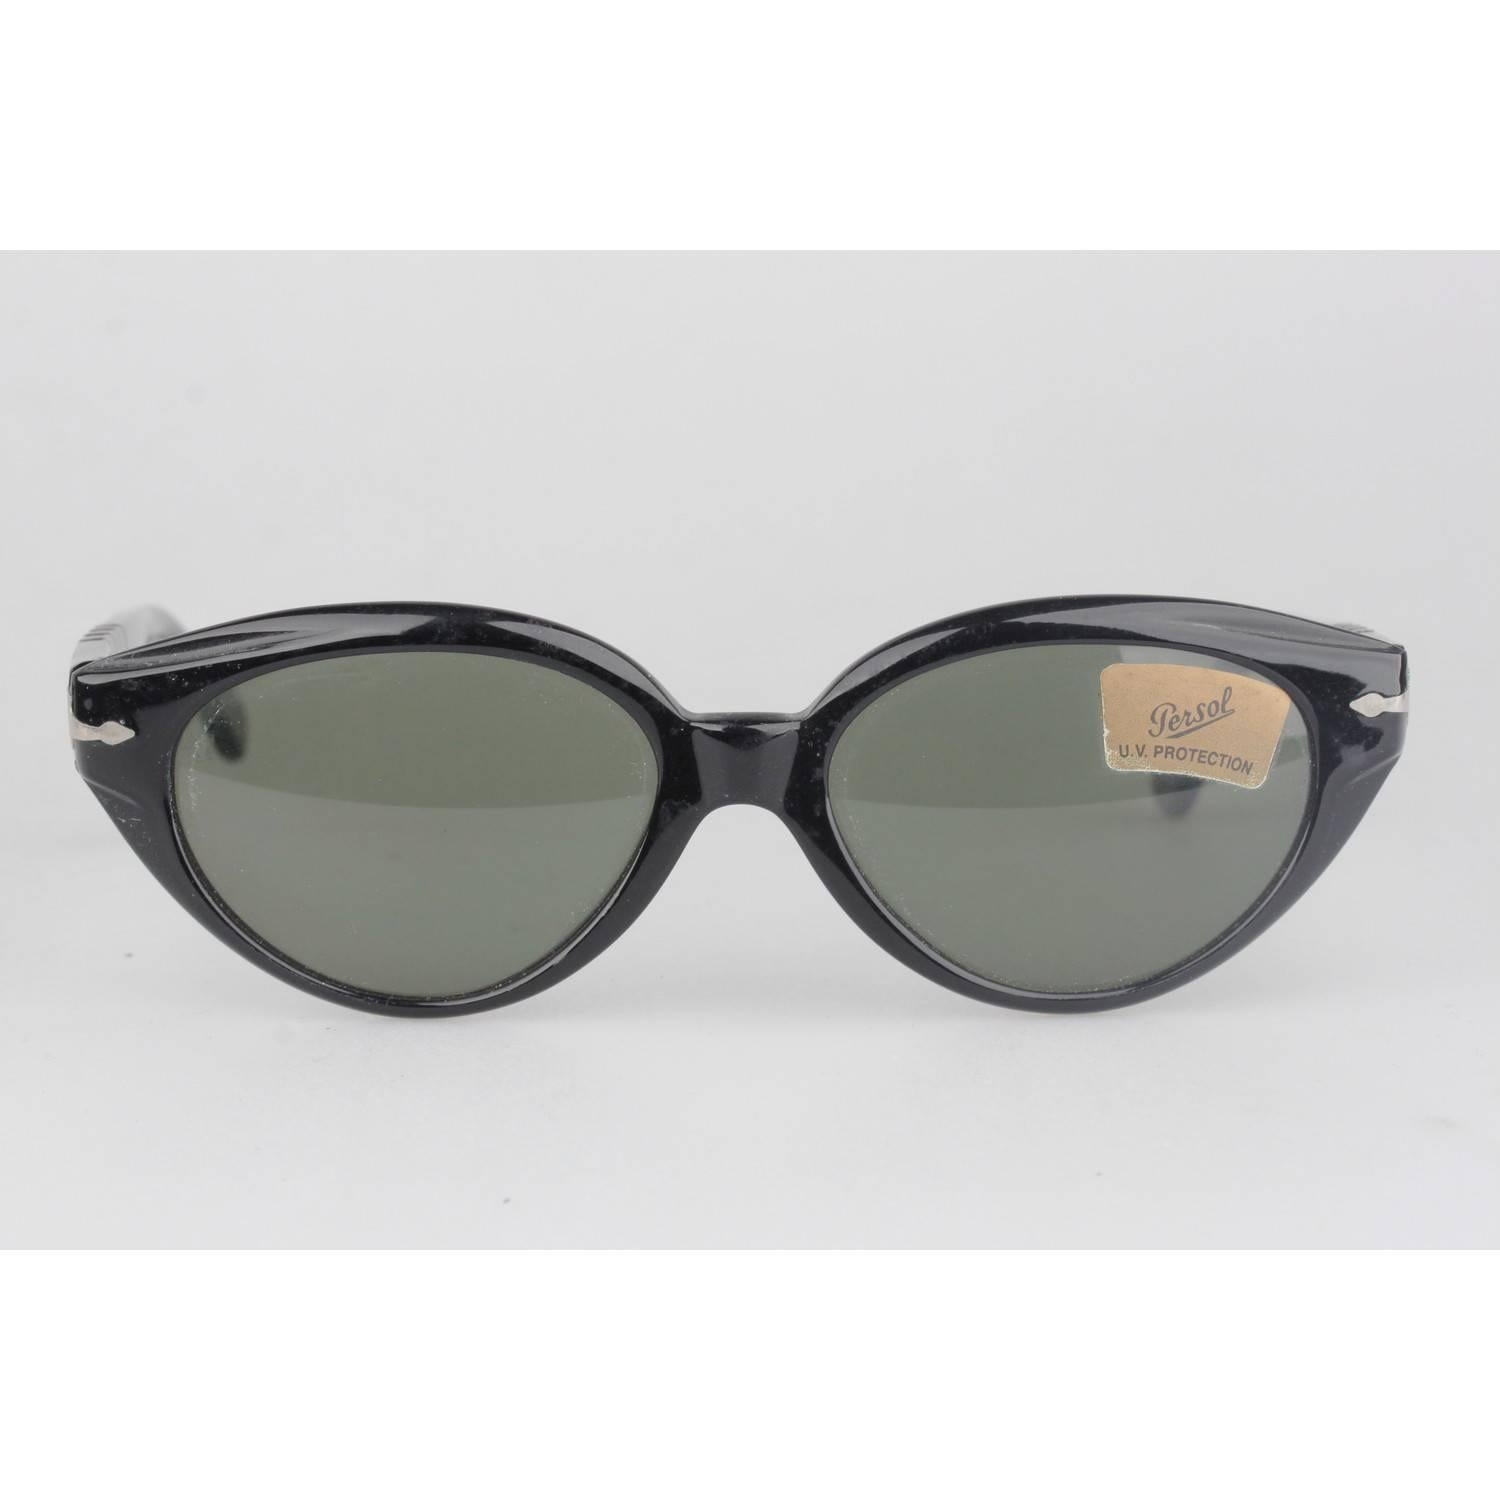 7843c6c76e PERSOL RATTI Vintage Black Sunglasses CAROL 853 54-16mm New Old Stock For  Sale at 1stdibs